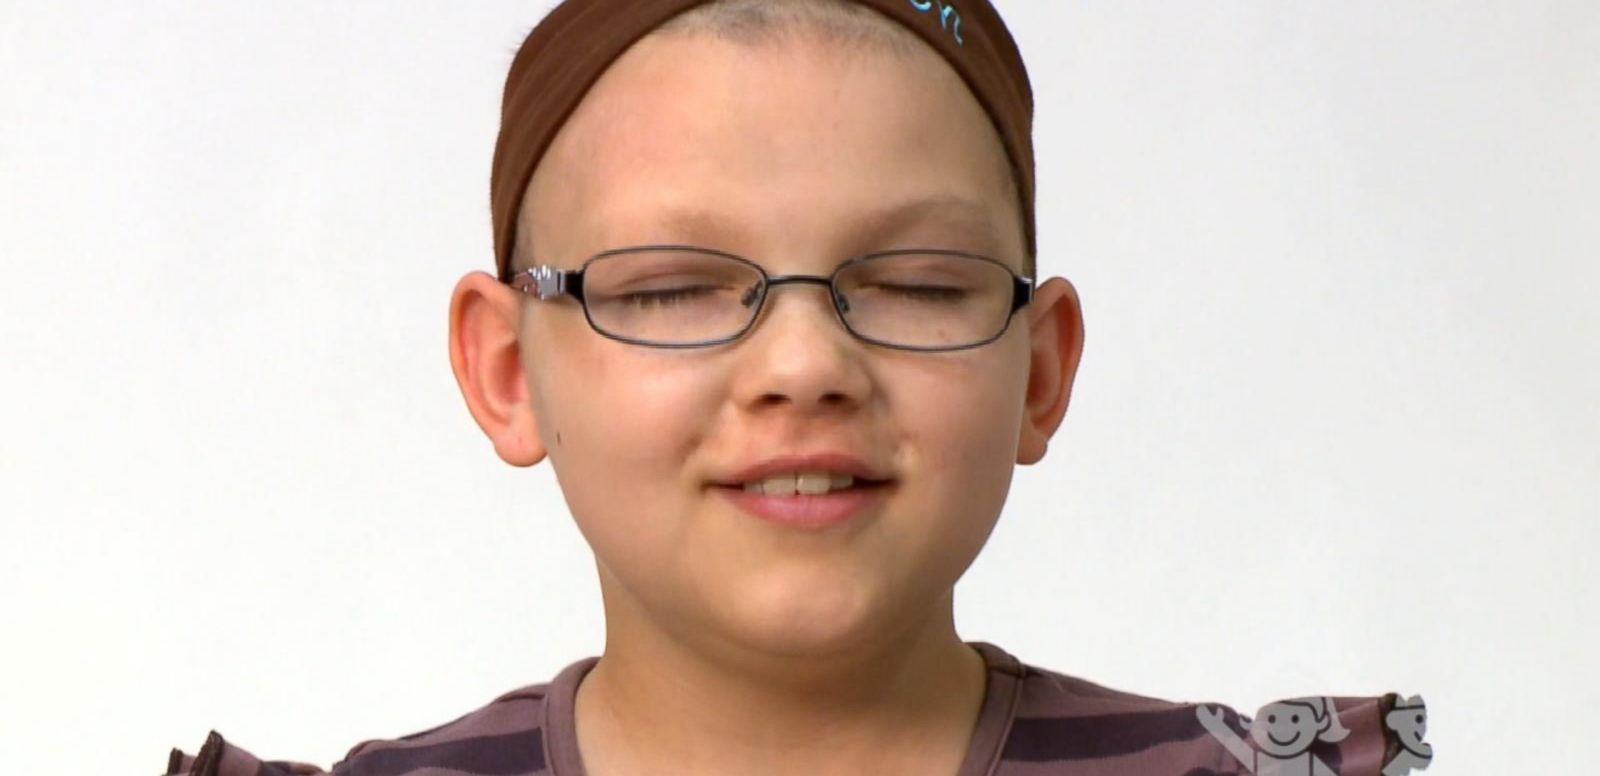 VIDEO: Kids With Cancer Get Their 'Happy Place' Brought to Life